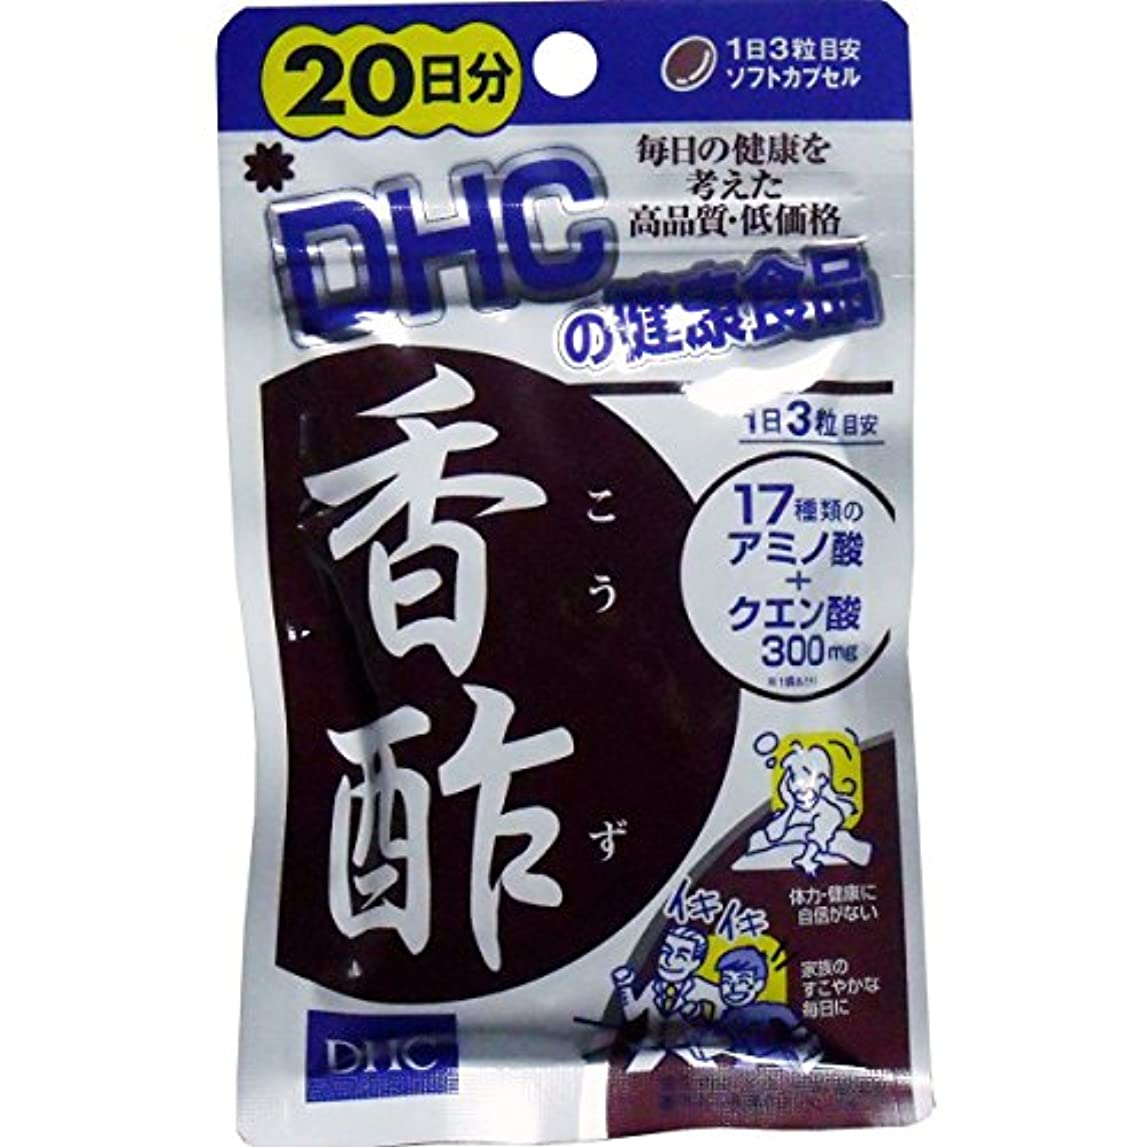 DHC 香酢 20日分 60粒入「4点セット」